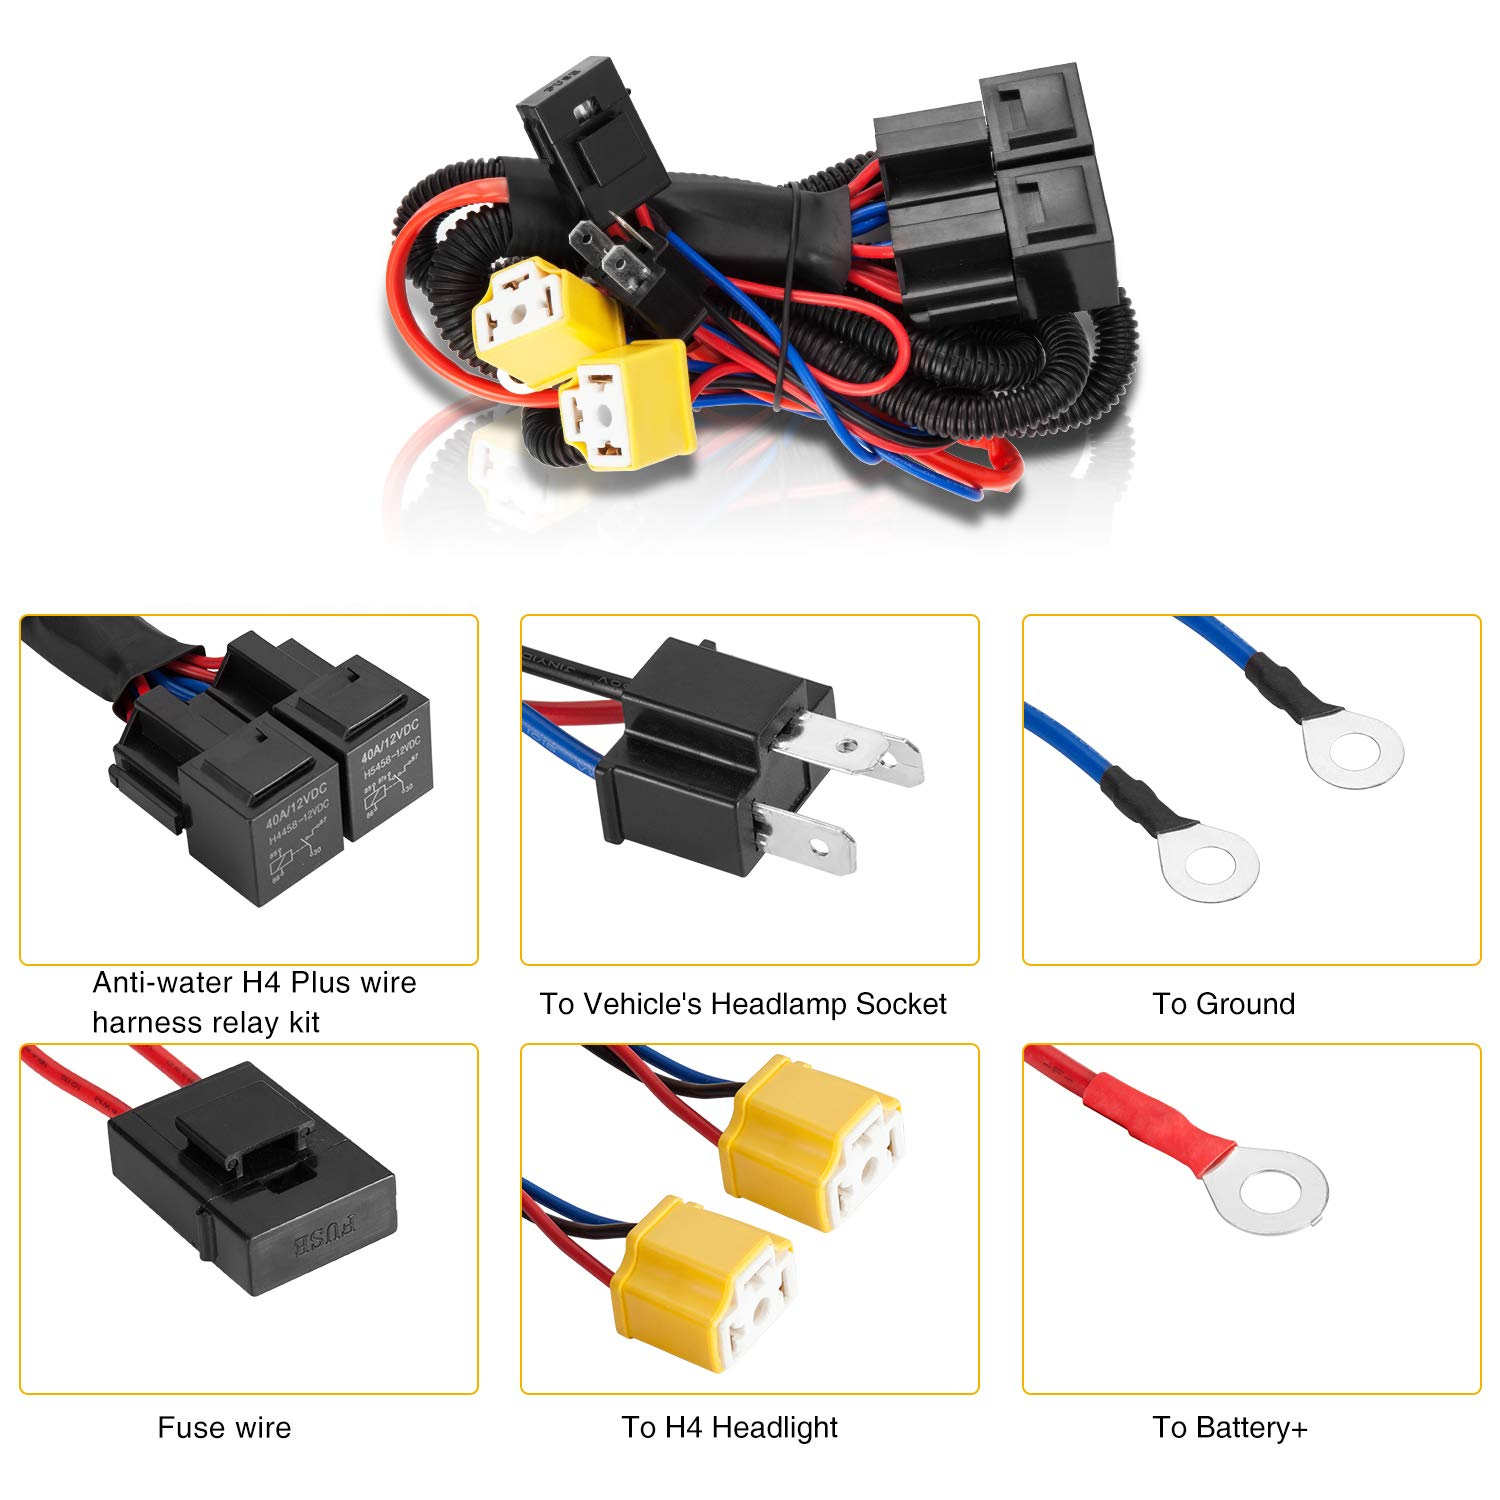 Kentucky Wiring Harness Library Trailer Diagram Amazoncom Limicar 2pcs H4 Socket 9003 Hb2 Wire Compatible With 7